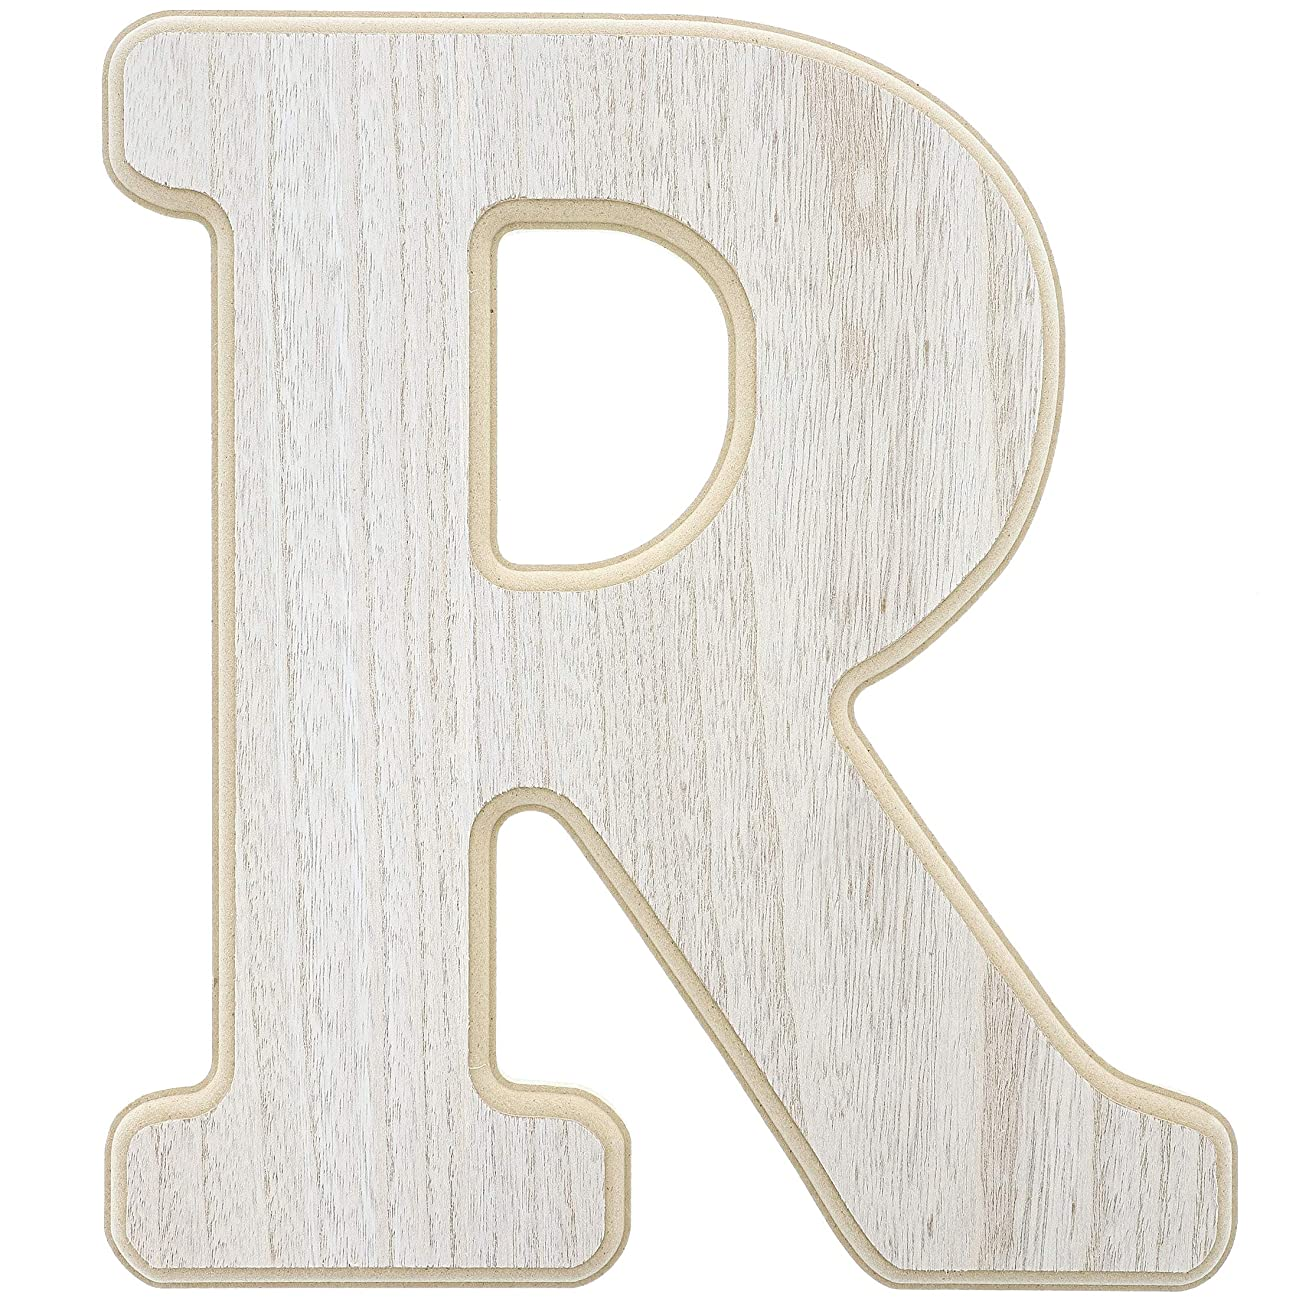 Unfinished Wood Letter R Cutout for DIY Painting, Crafts, and Wall Decor, 10.5 x .5 x 12 Inches